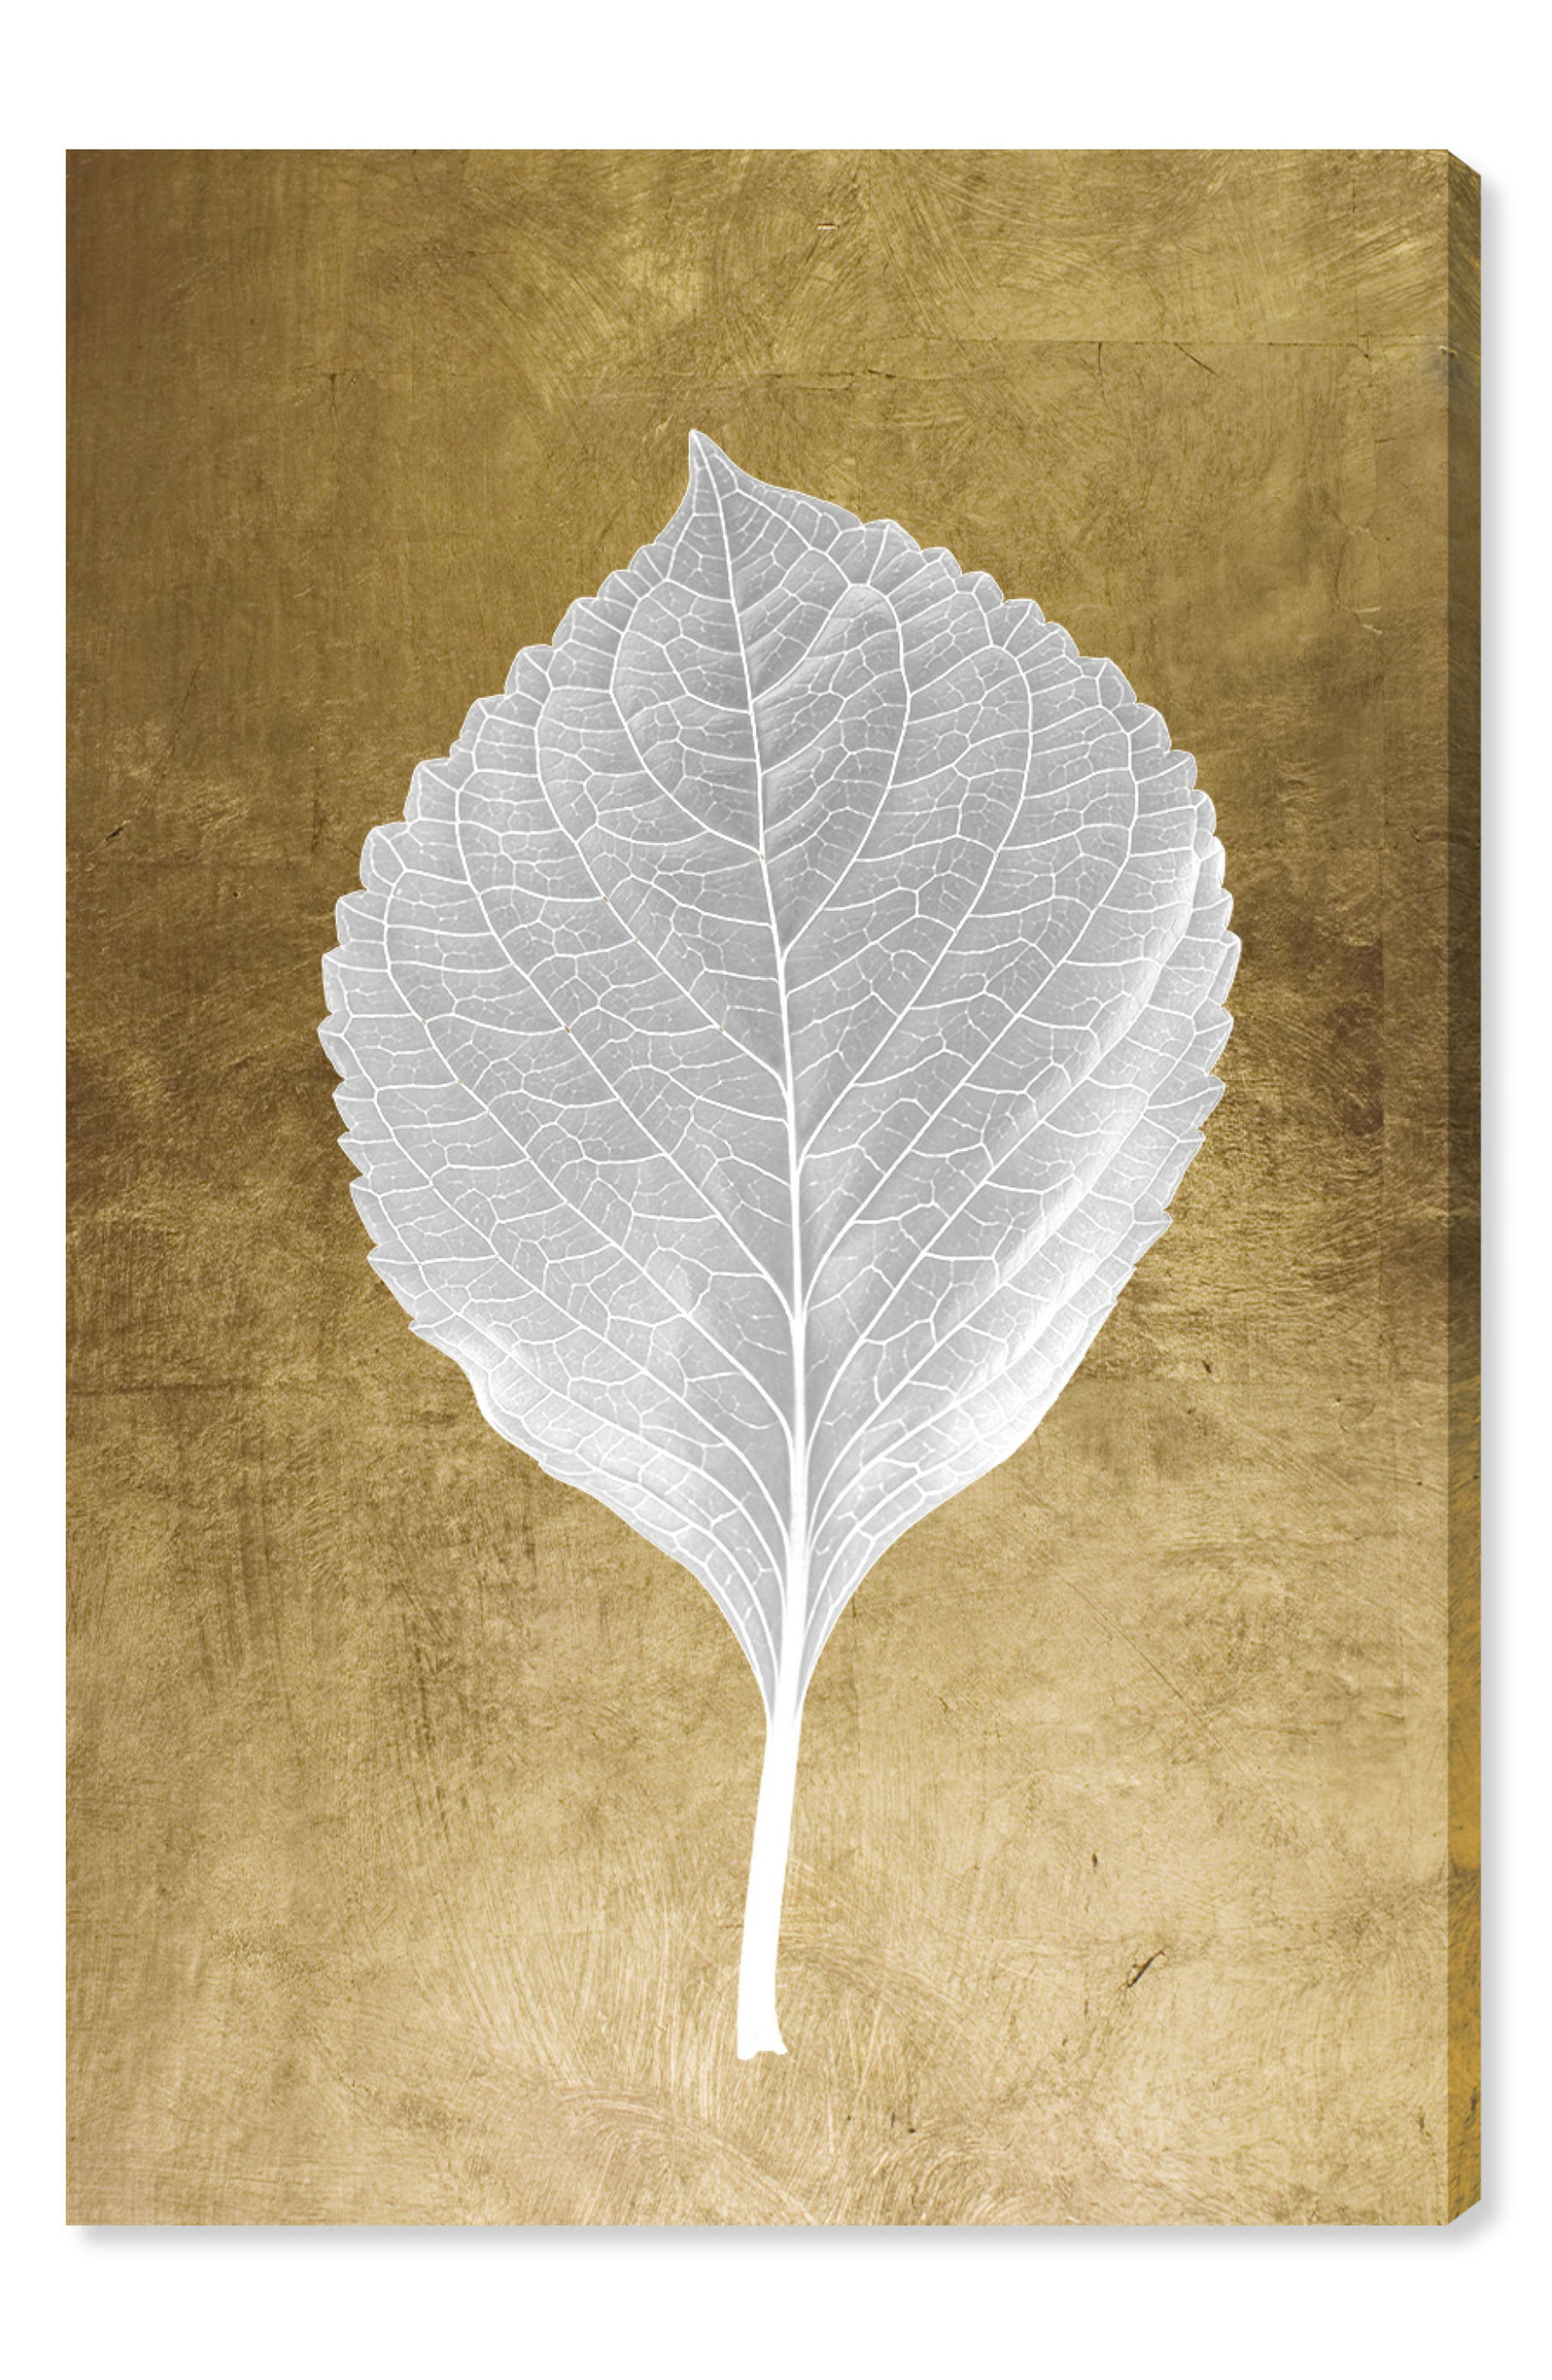 Alternate Image 1 Selected - Oliver Gal Leaf in Gold I Canvas Wall Art